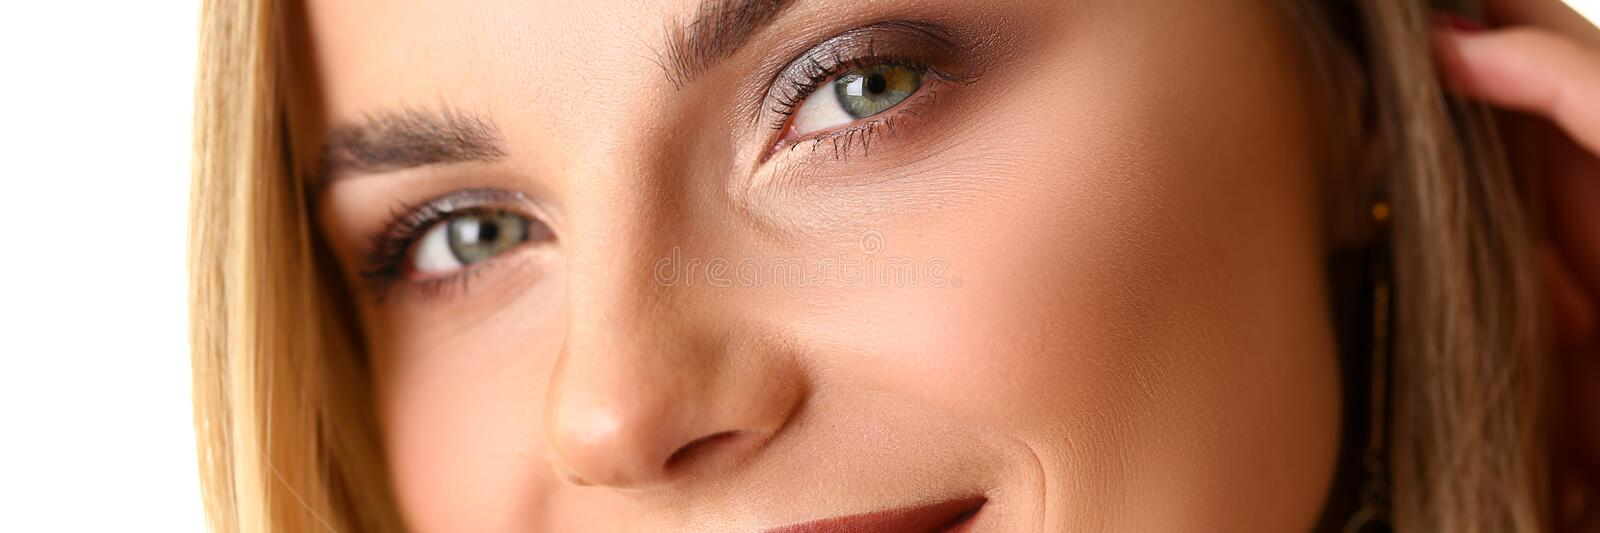 Beauty Closeup Portrait of Caucasian Young Woman stock photos